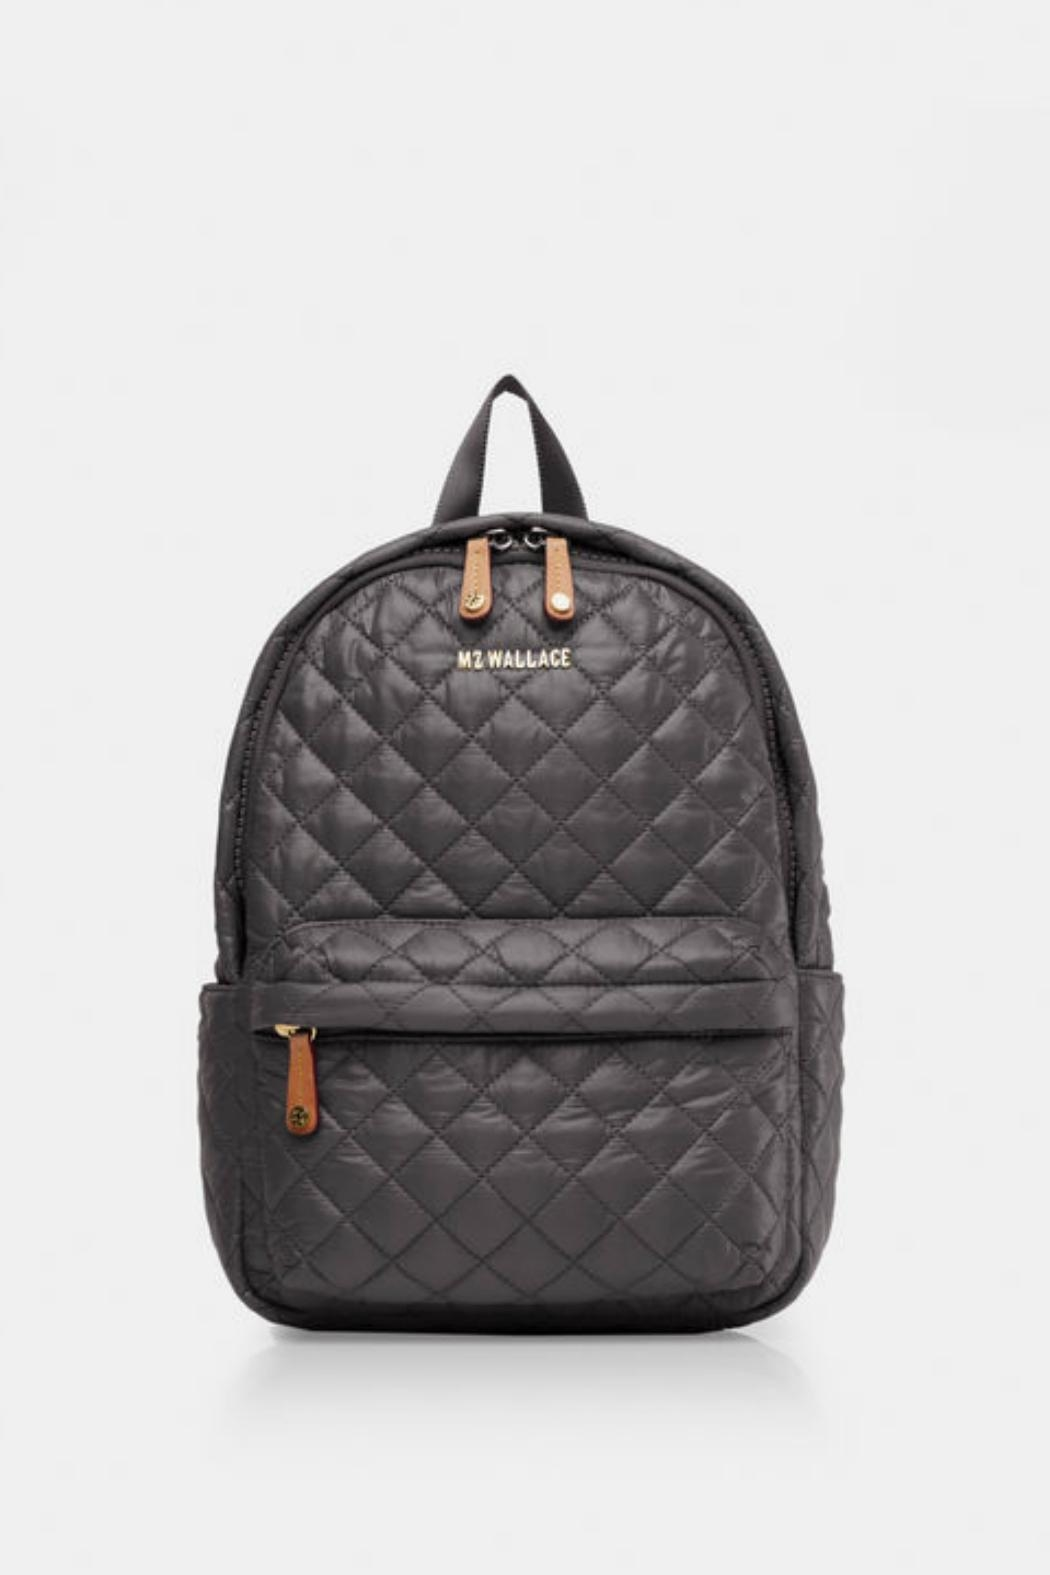 c5b5febeb332 MZ Wallace Small Metro Backpack from New York City by Protass Gifts ...